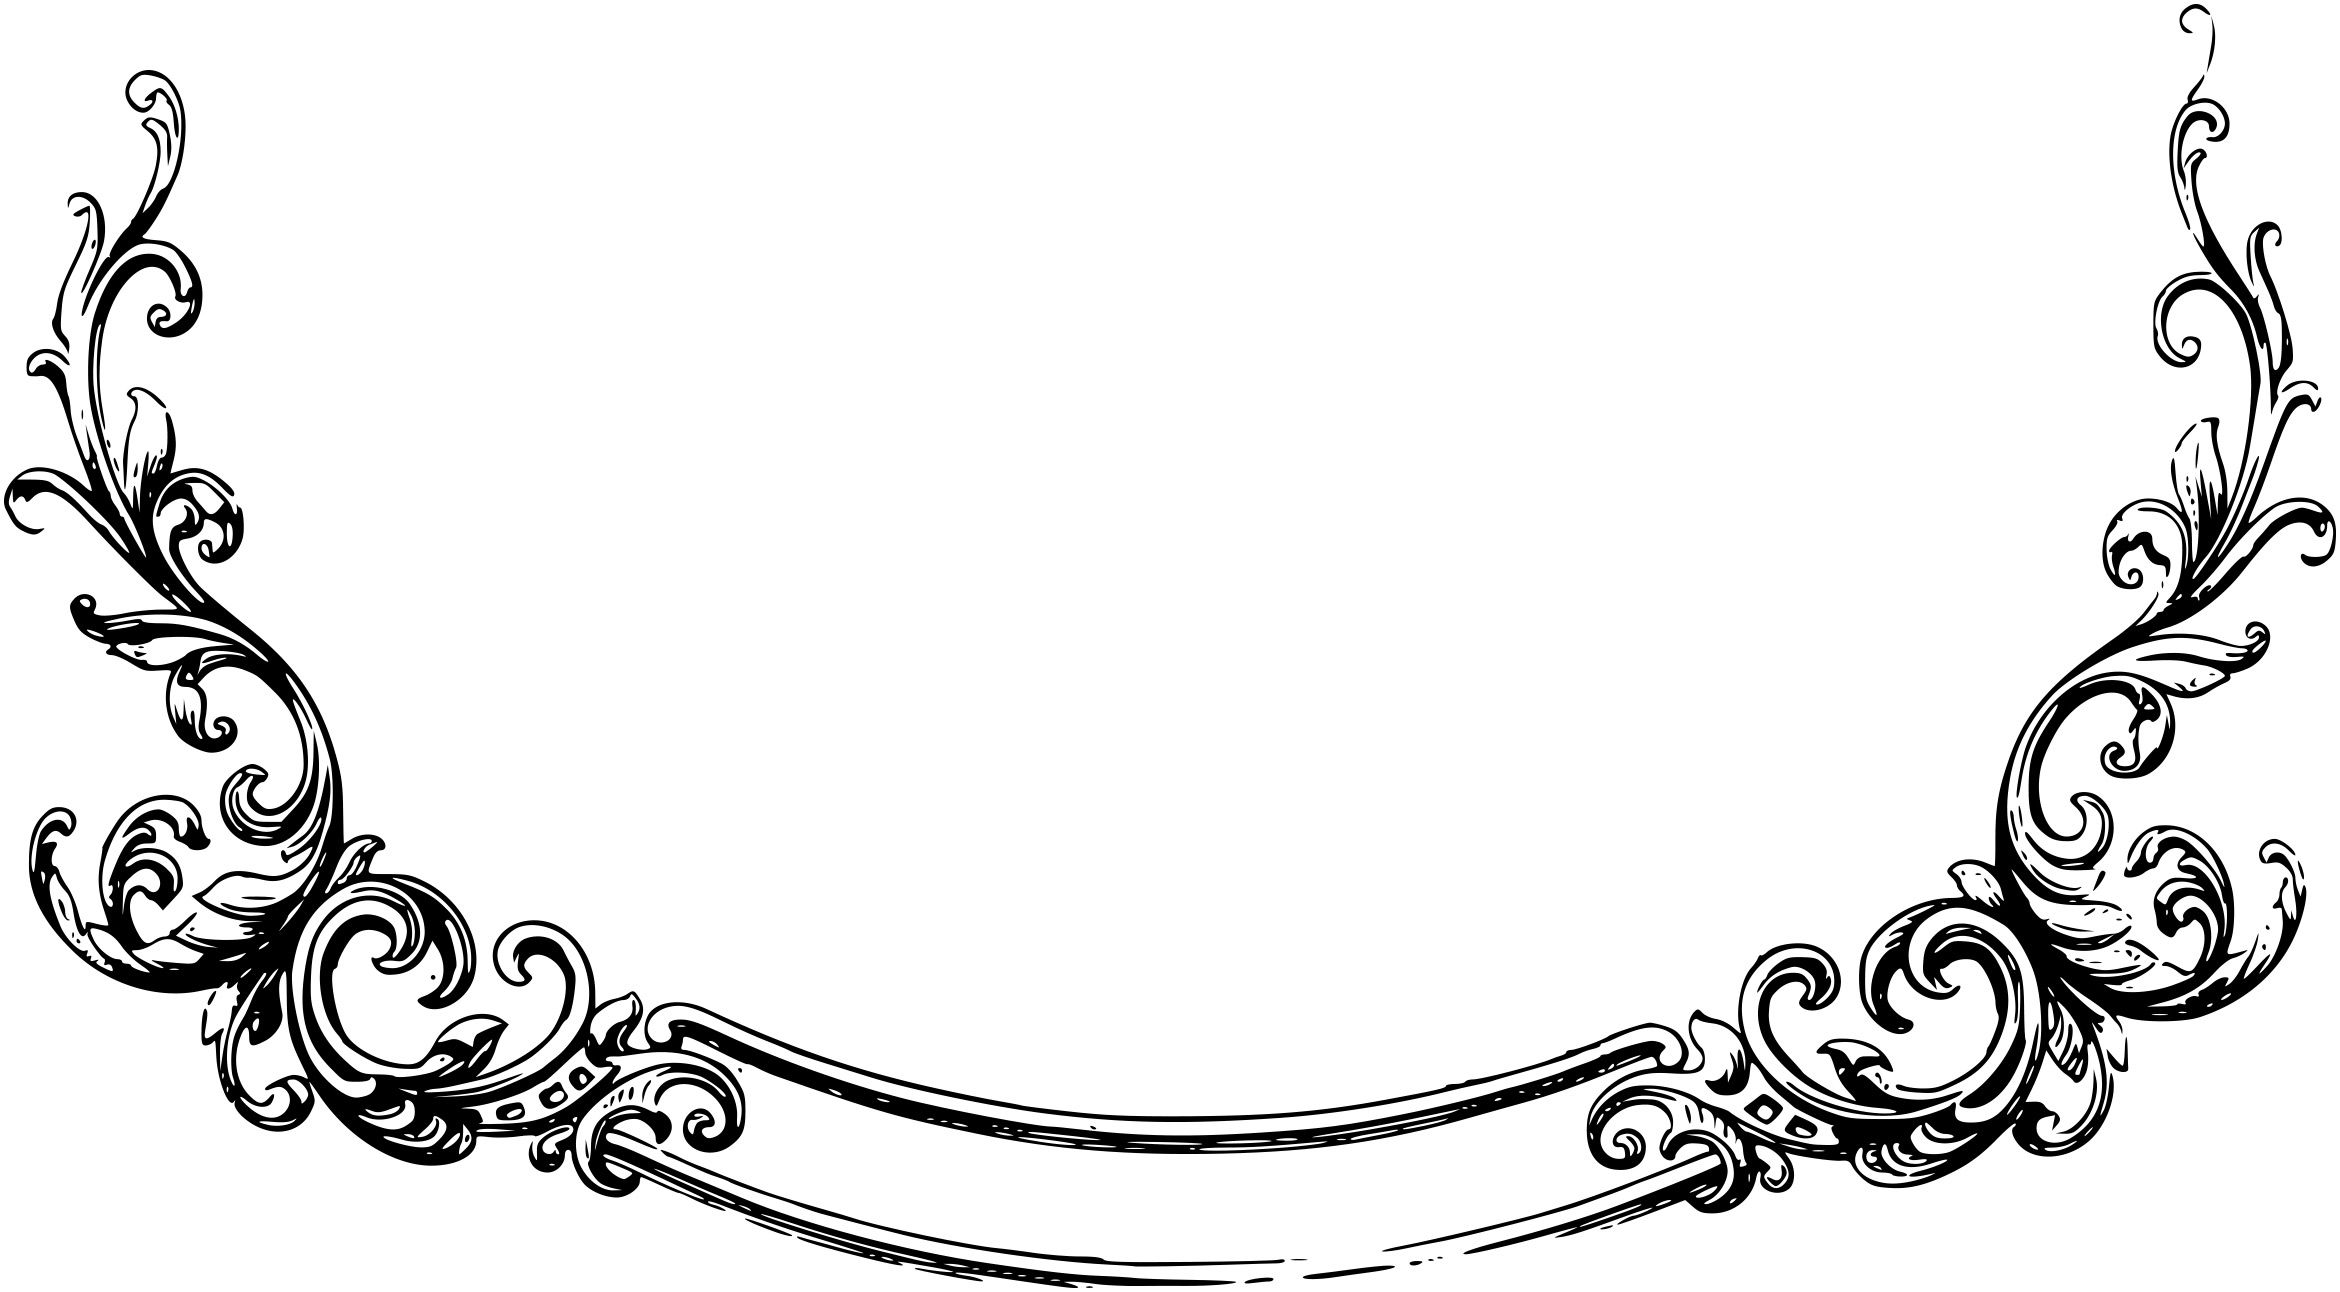 Free clipart scroll border clip art freeuse download Clip Art Banners Border Ribbon Scroll – 101 Clip Art ... clip art freeuse download